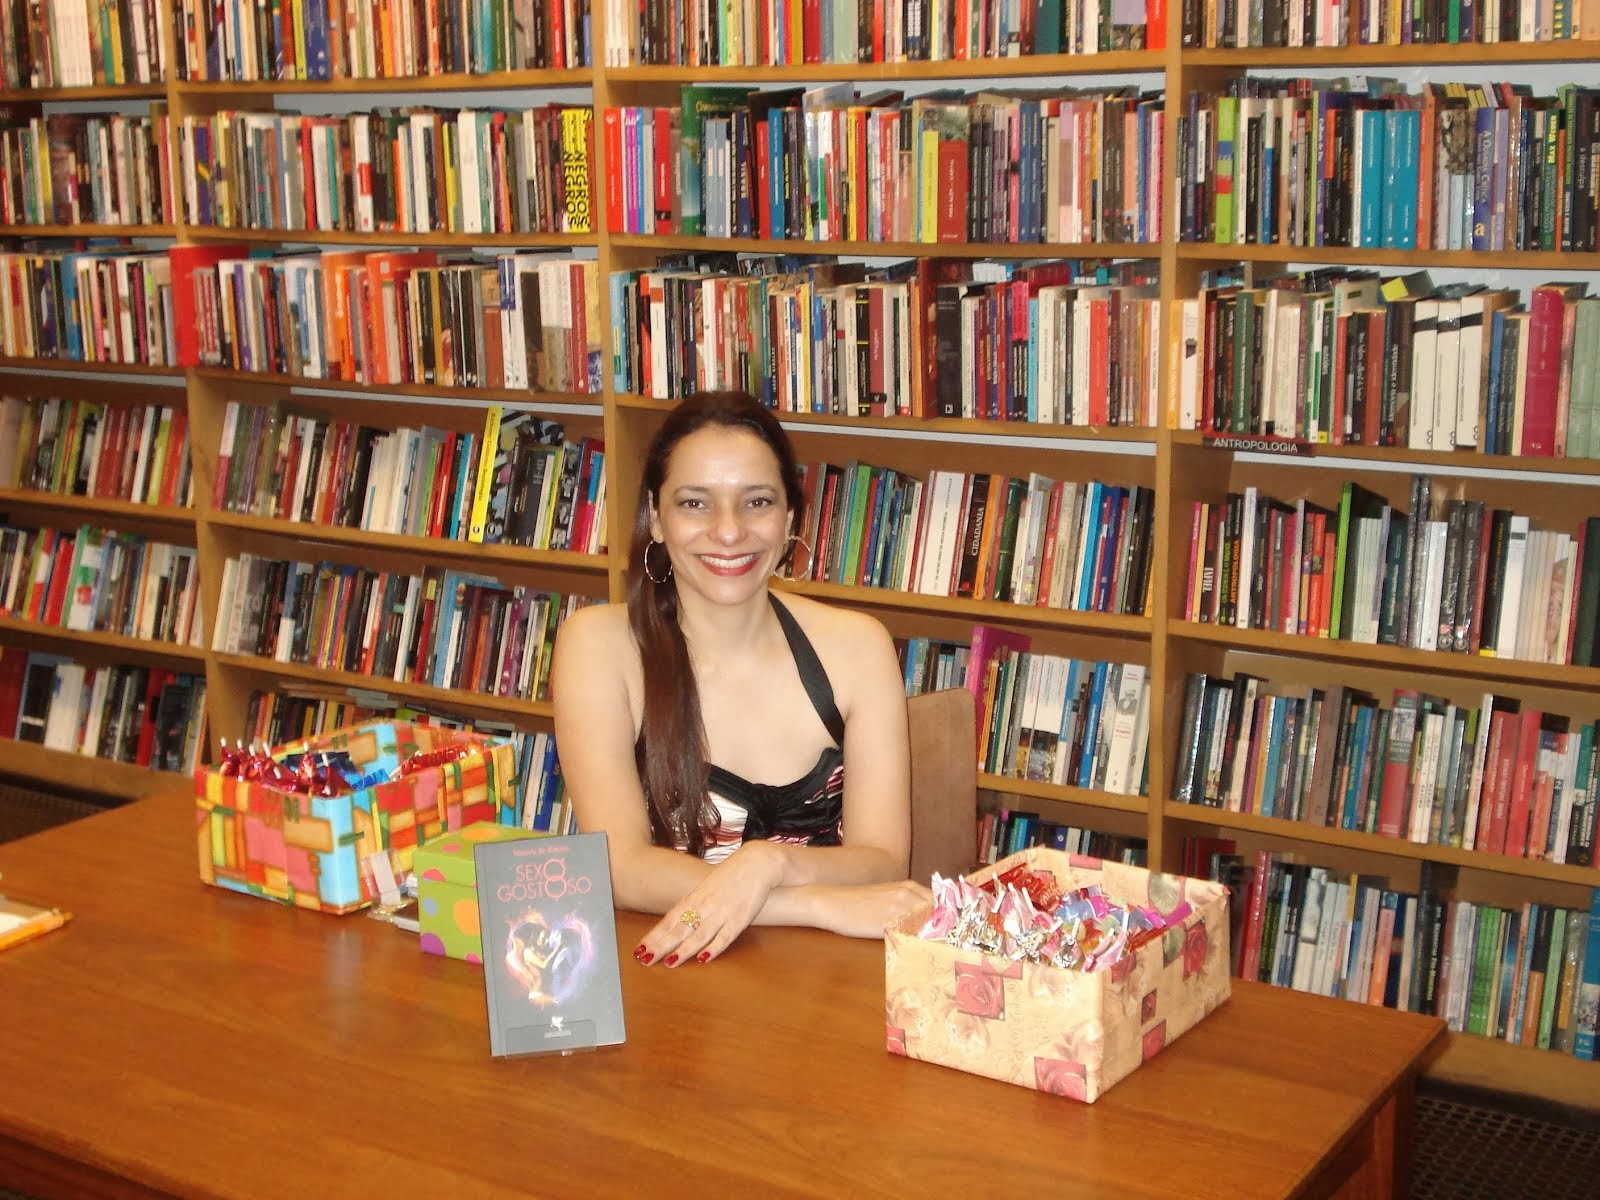 ENTREVISTA - Author Interview: Marcela Re Ribeiro: There Is No Why In Love